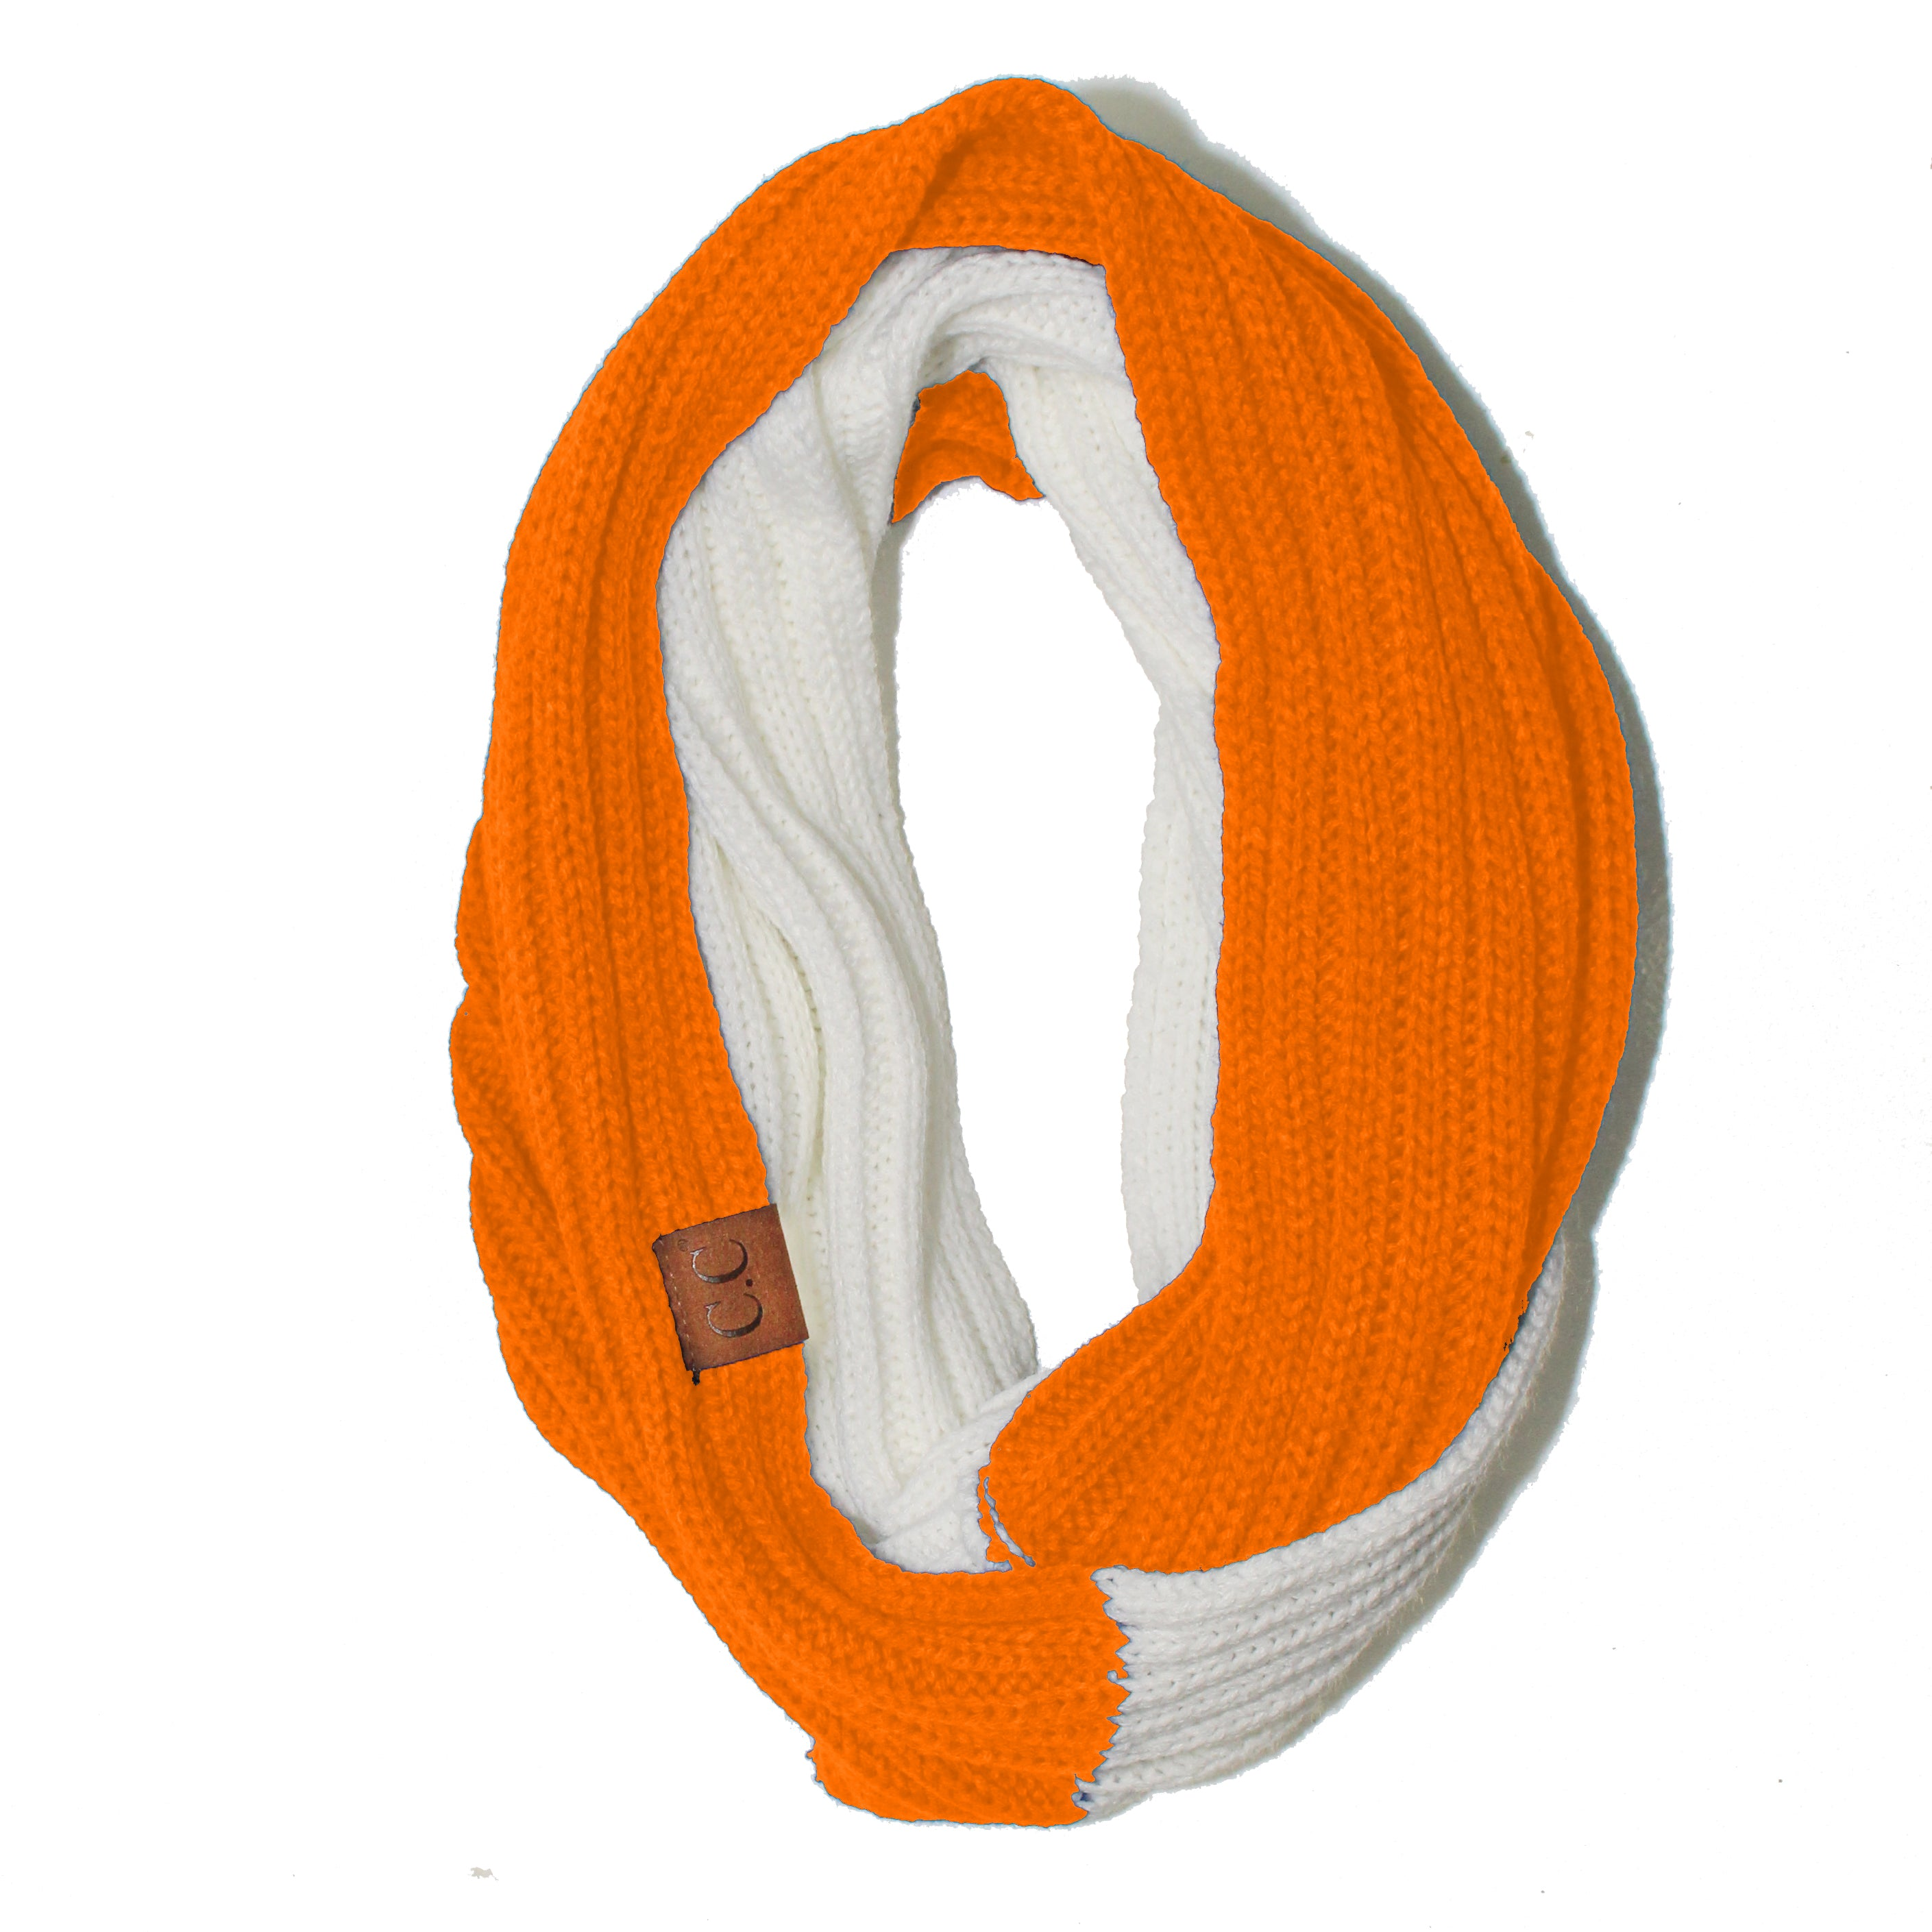 SF-56-8 Bright Orange and White Team Infinty Scarf